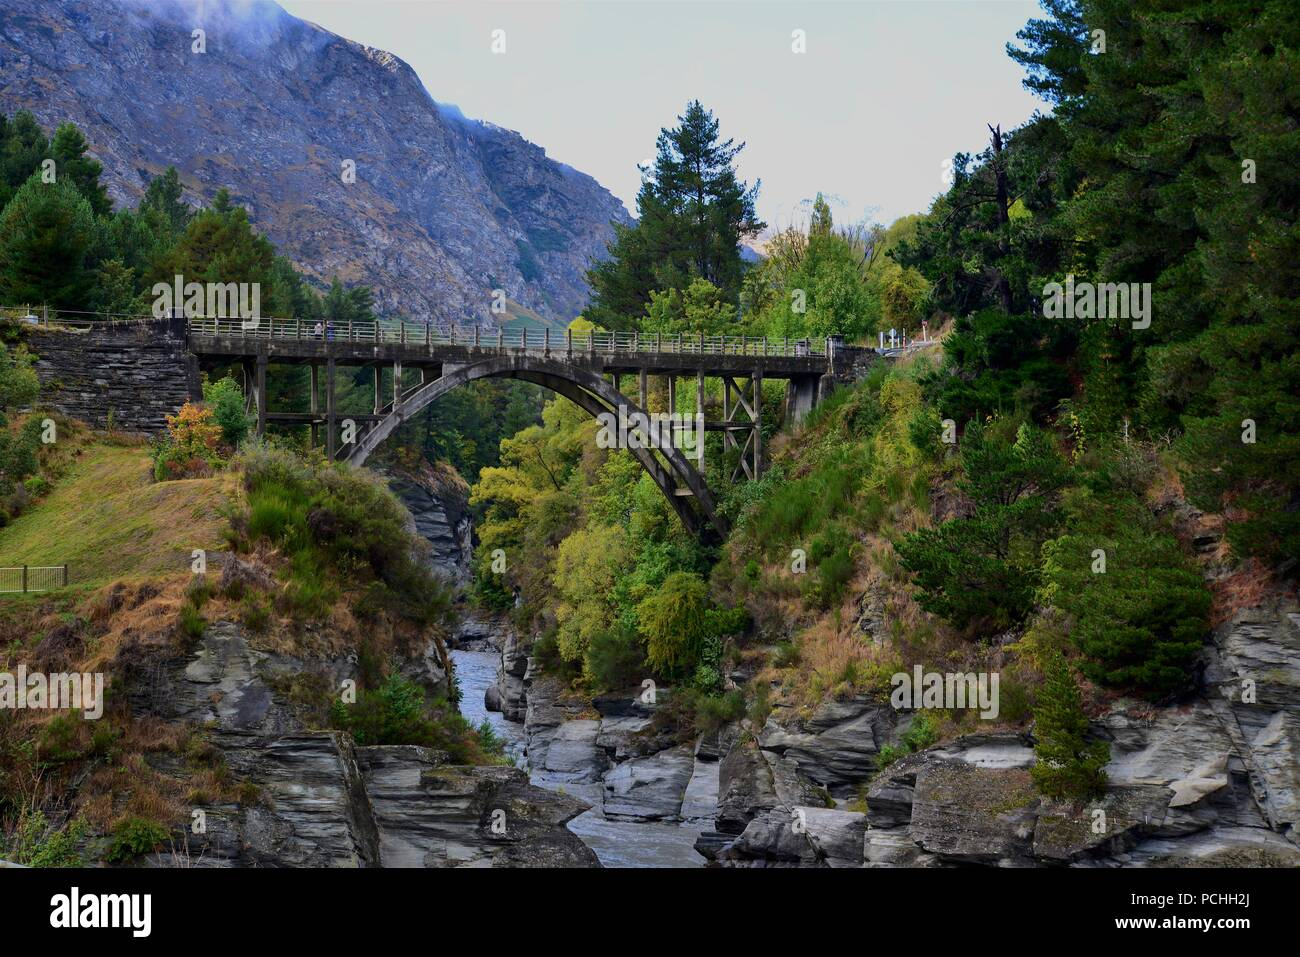 Queenstown, South Island, New Zealand Landscape - Stock Image